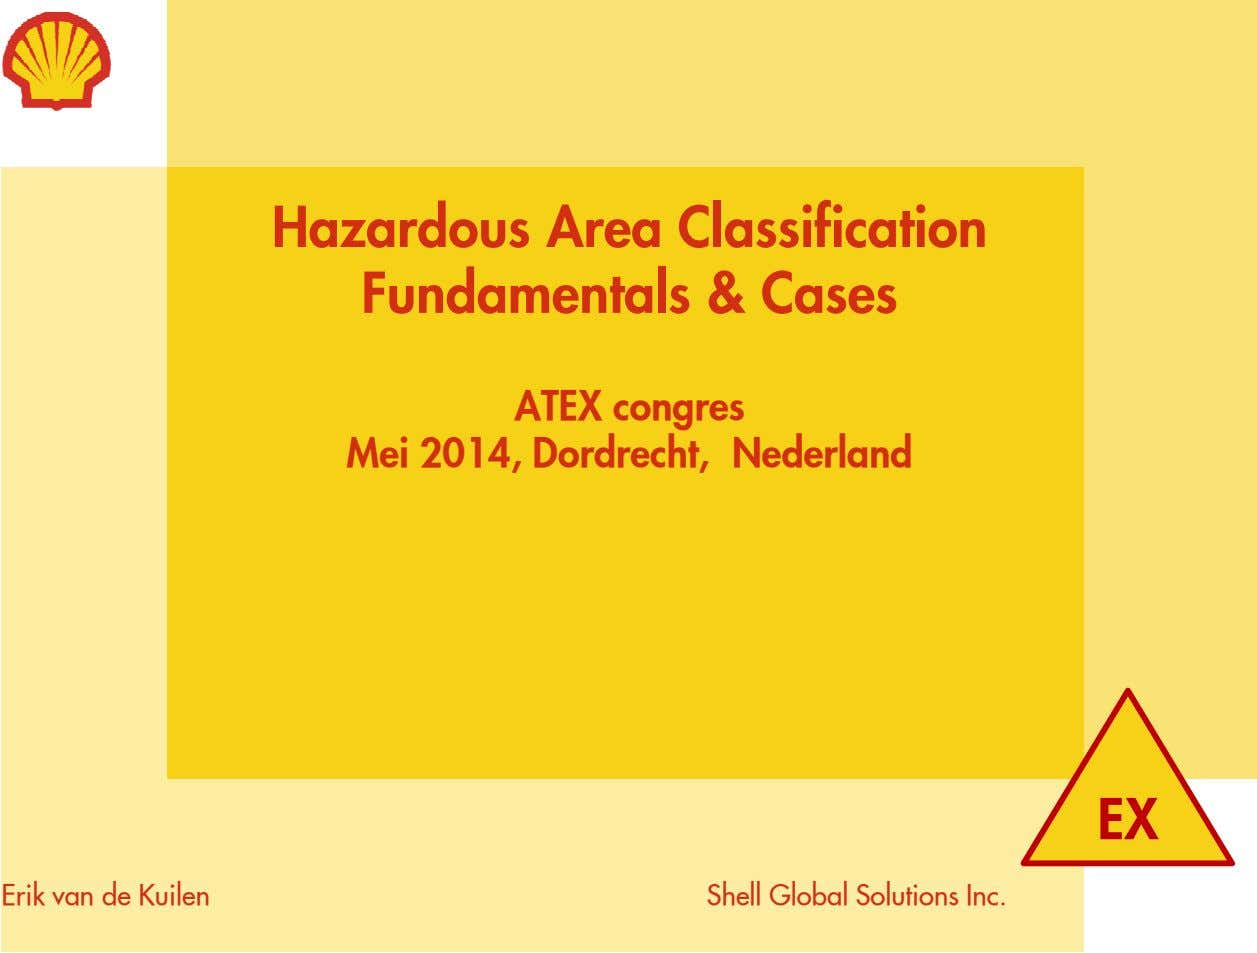 Hazardous Area Classification Fundamentals & Cases ATEX congres Mei 2014, Dordrecht, Nederland EX Erik van